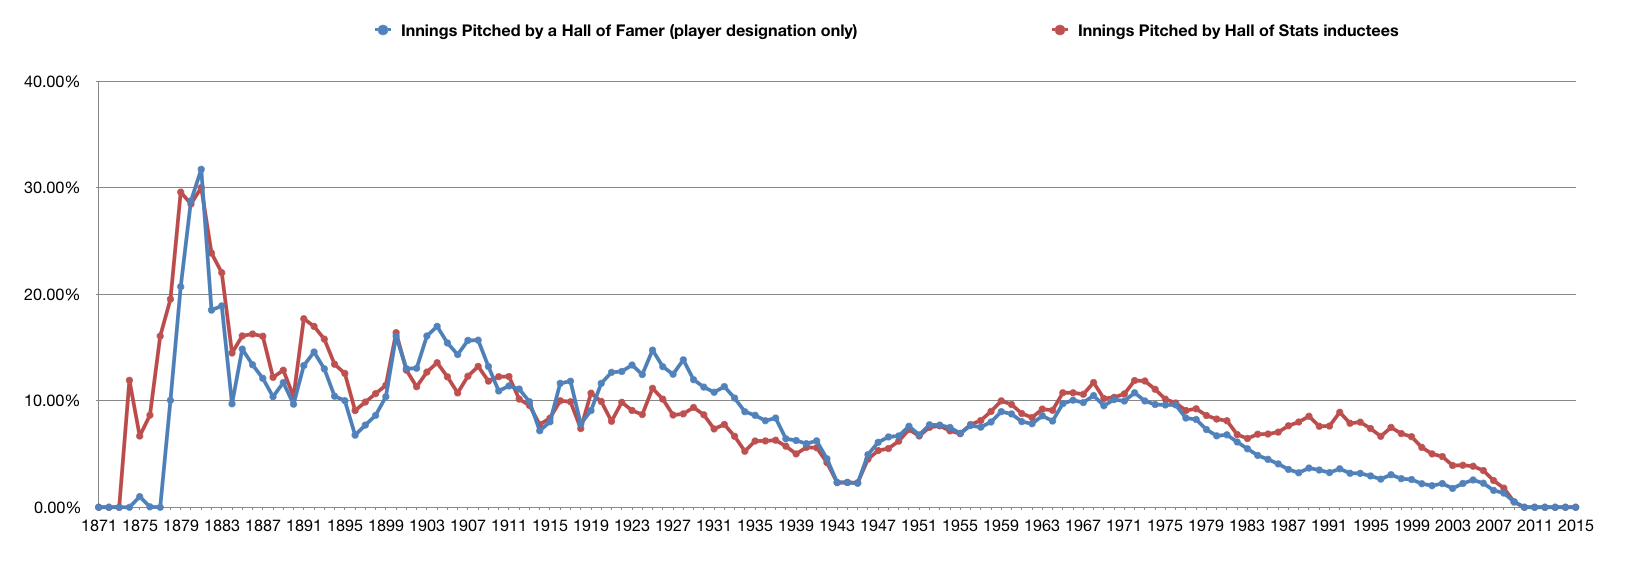 Percentage of Innings Pitched made by a Hall of Famer and a Hall of Stats member